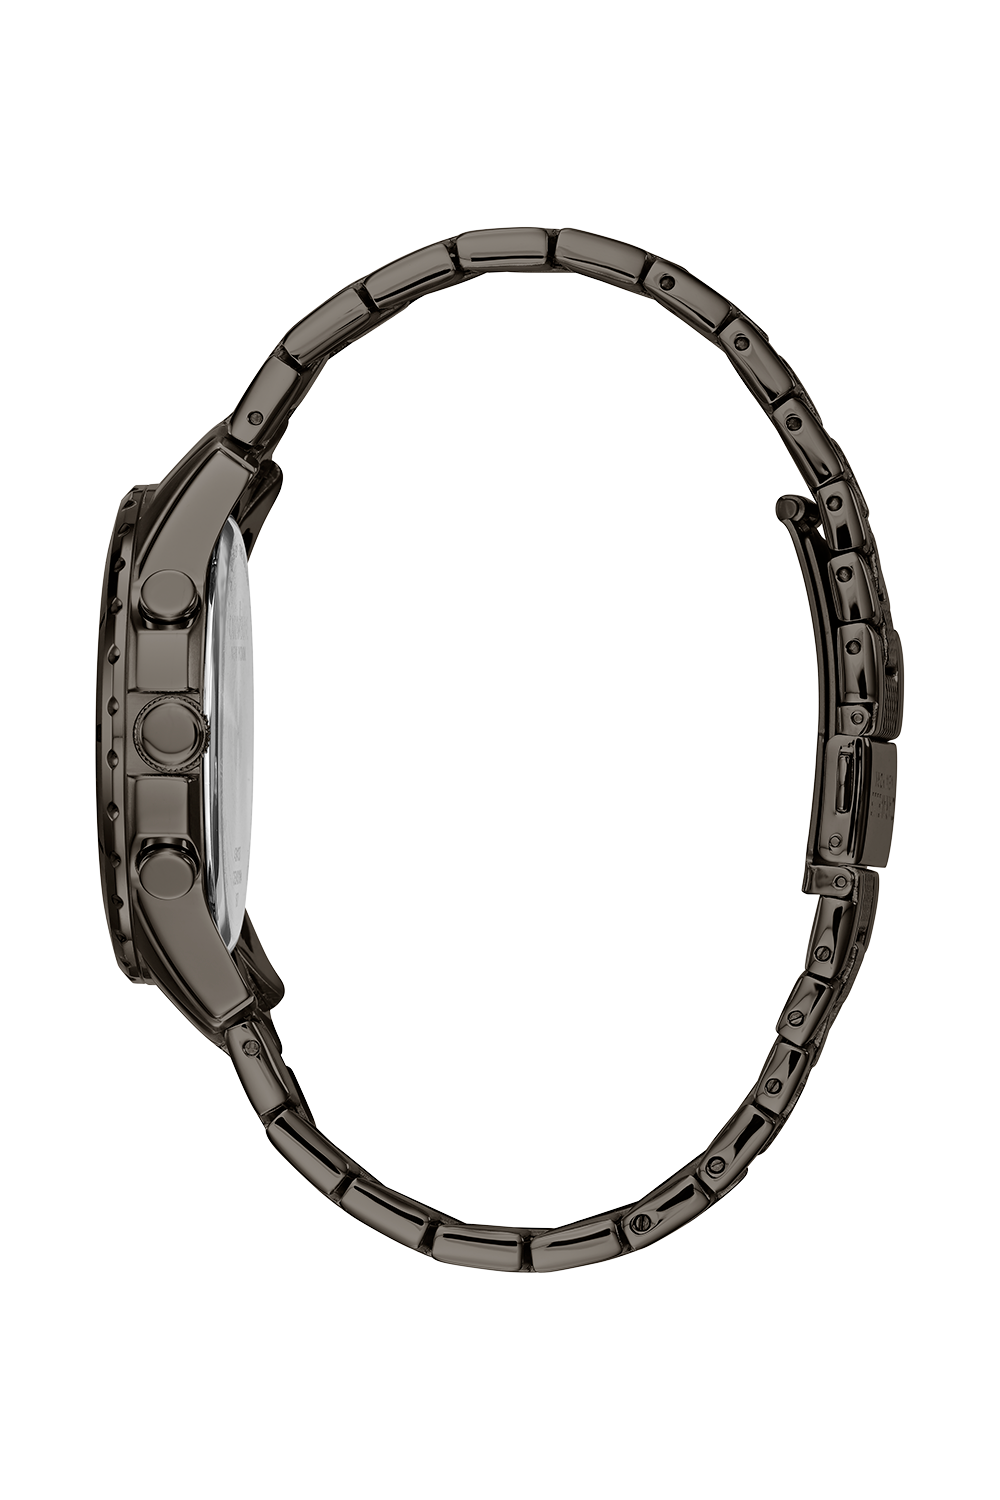 Men's Chronograph (45A142) - Design by Jesse